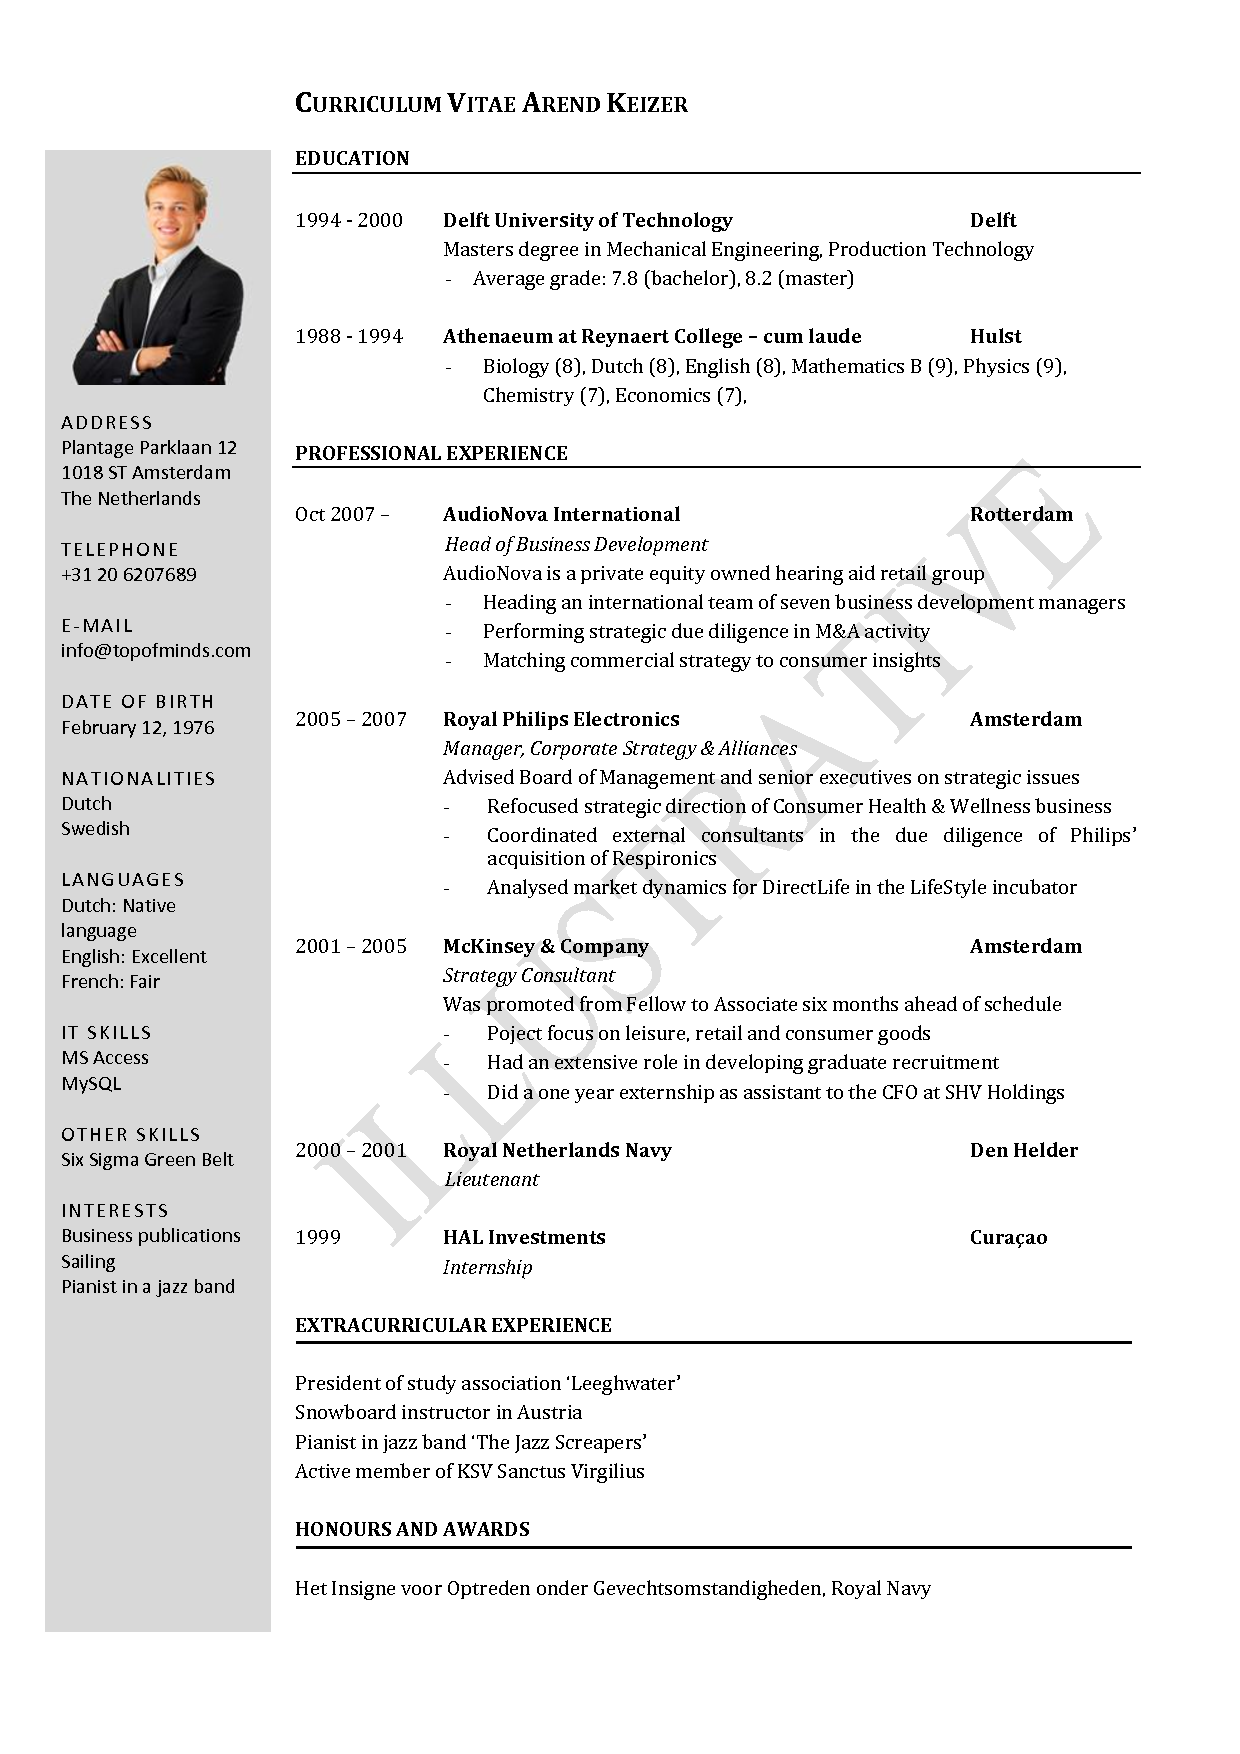 cv template university student Google Search – Resume Templates for Students in University